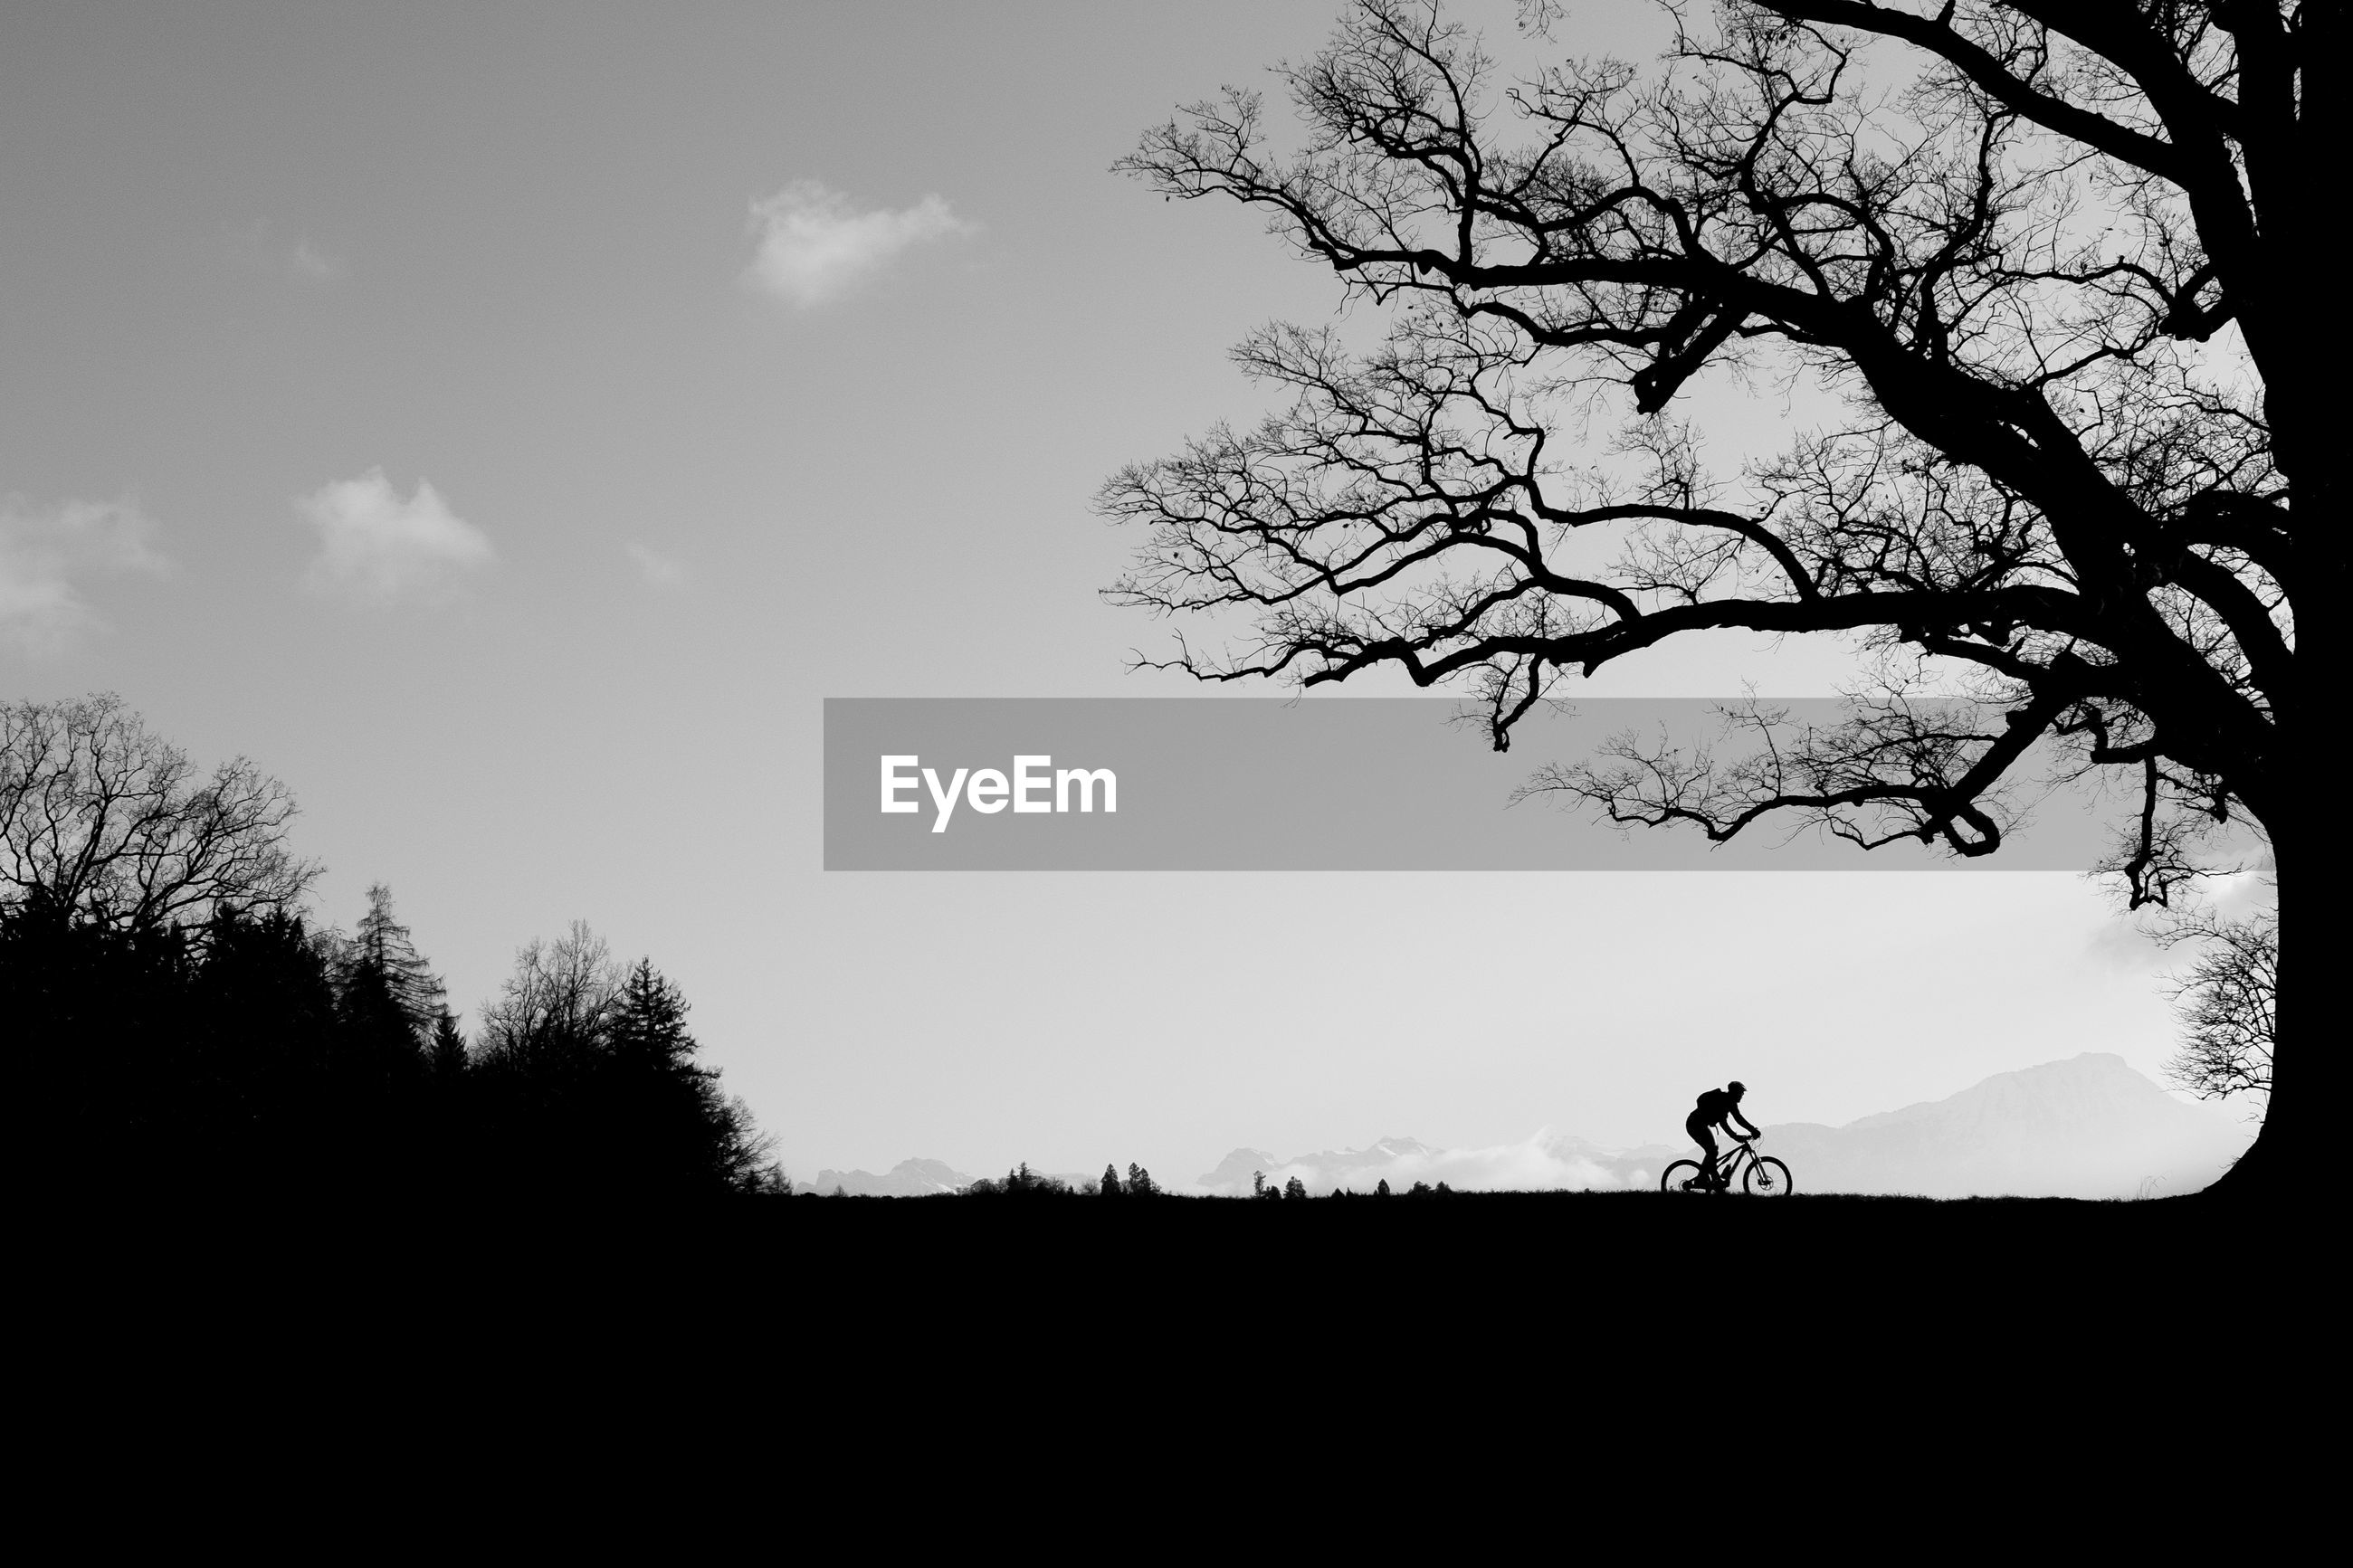 SILHOUETTE OF PERSON RIDING BICYCLE ON FIELD